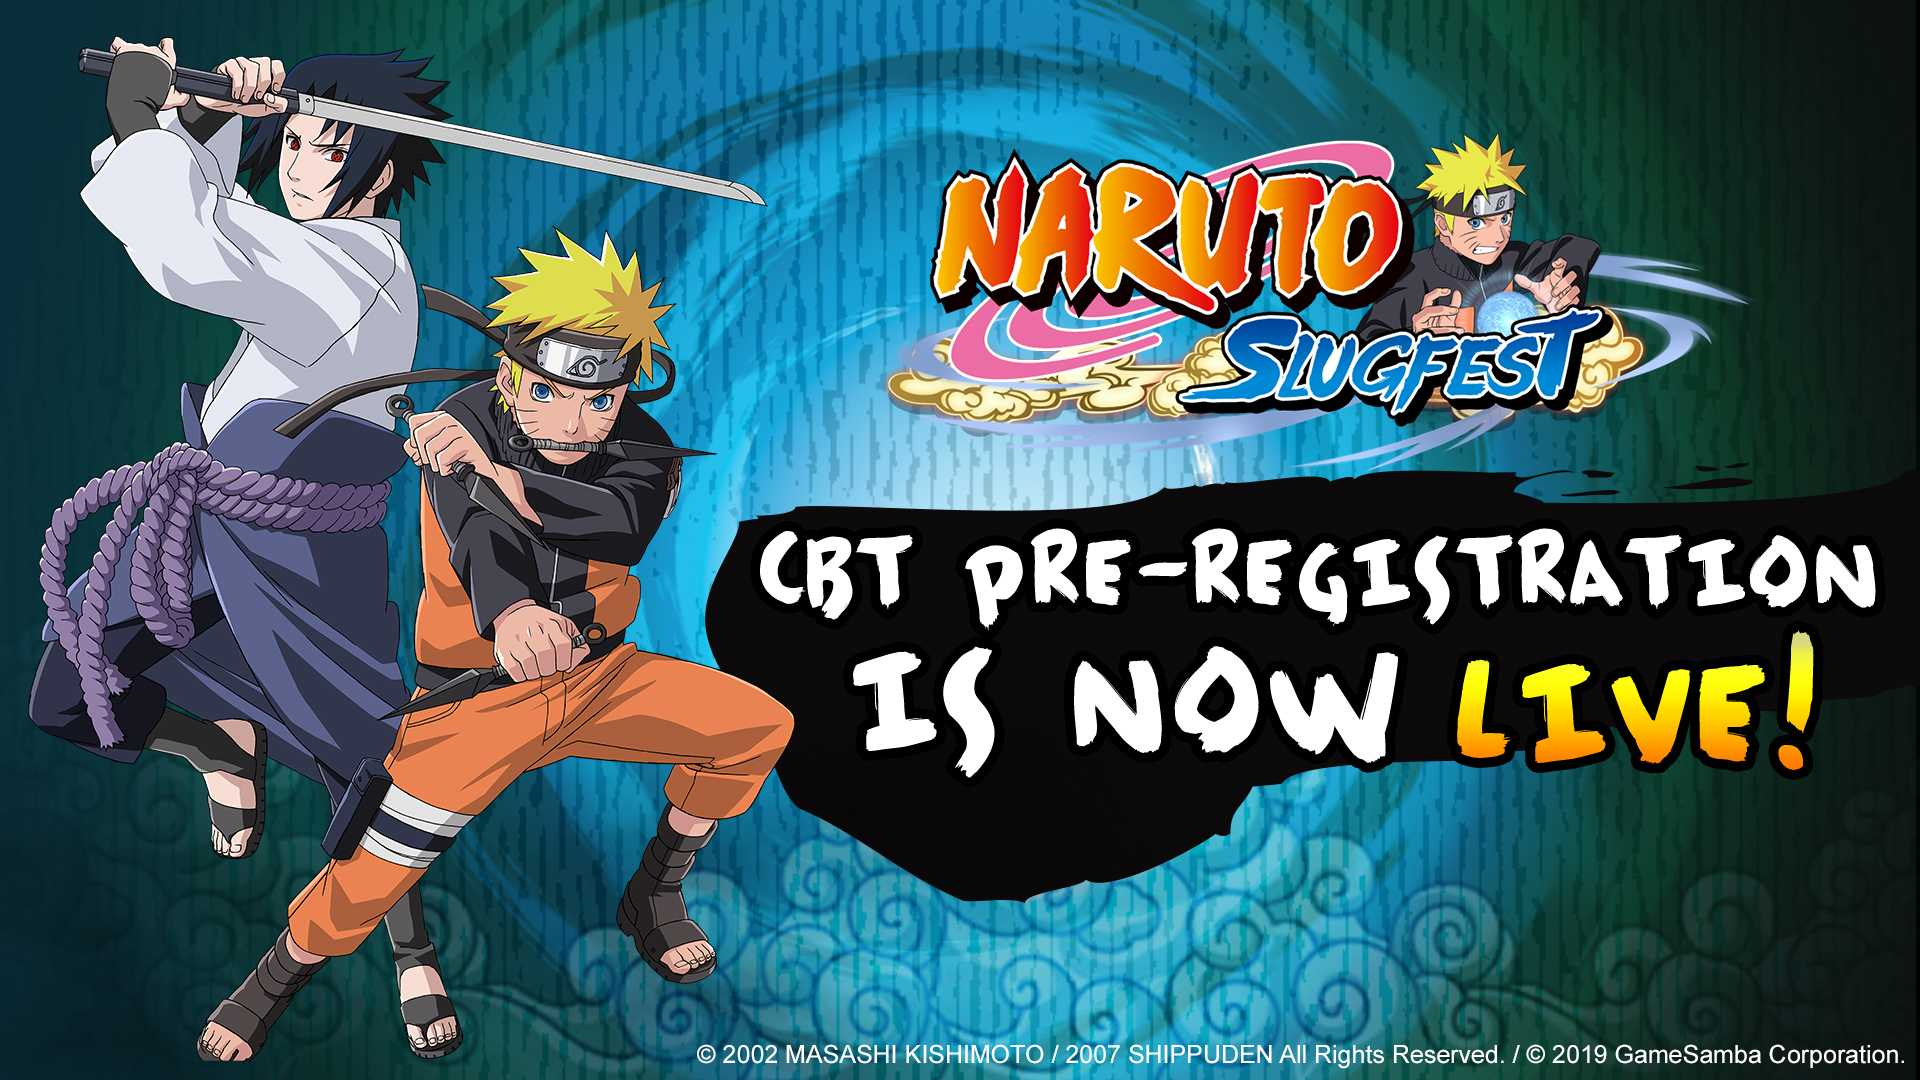 naruto slugfest cbt pre-resigtration, Naruto: Slugfest, the first Naruto 3D open world MMORPG, is now open for CBT registration, Gadget Pilipinas, Gadget Pilipinas